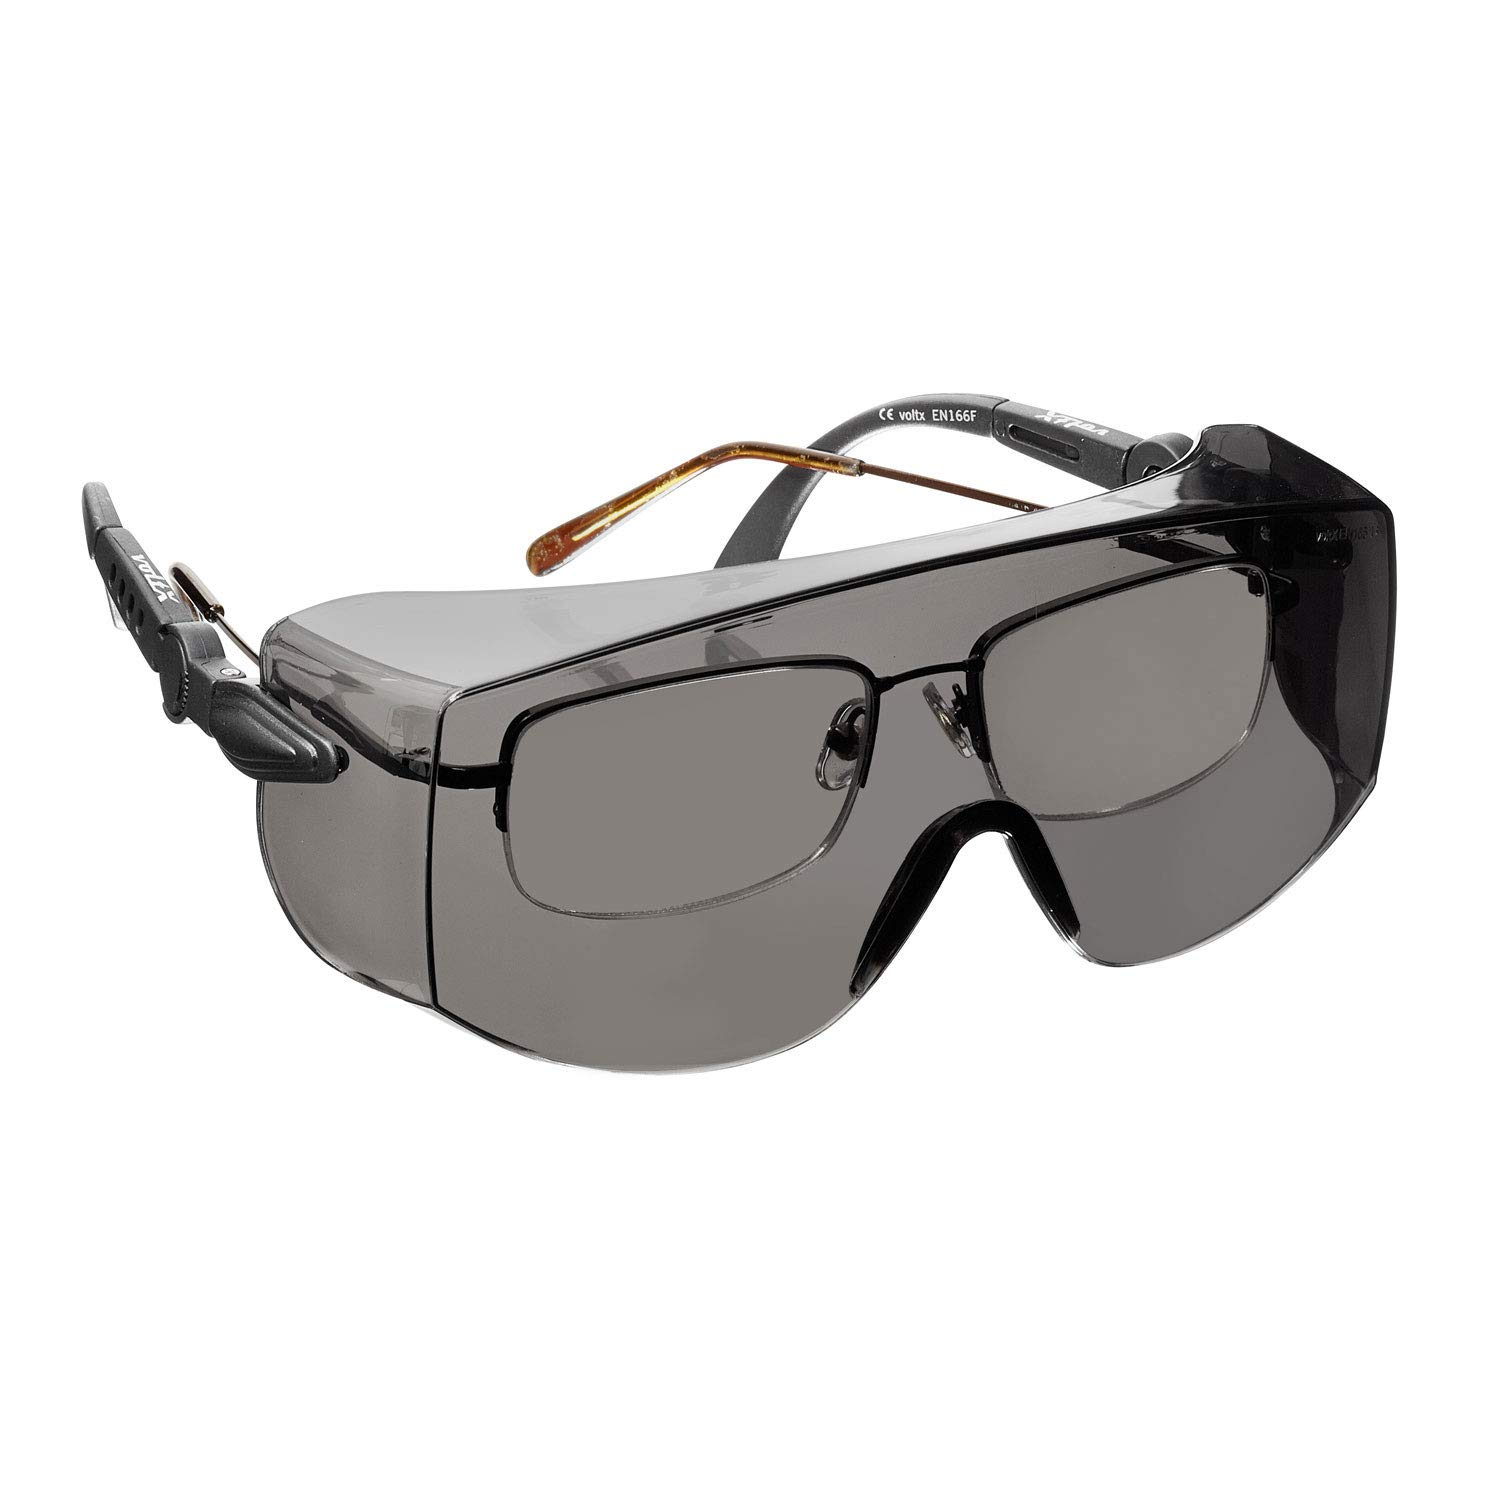 voltX 'OVERSPECS' Large Size, Industrial Safety Over Glasses - CE EN166f certified (Smoke Lens) - individually adjustable temples - antifog, scratch resistant, UV385 protection StraightLines Others